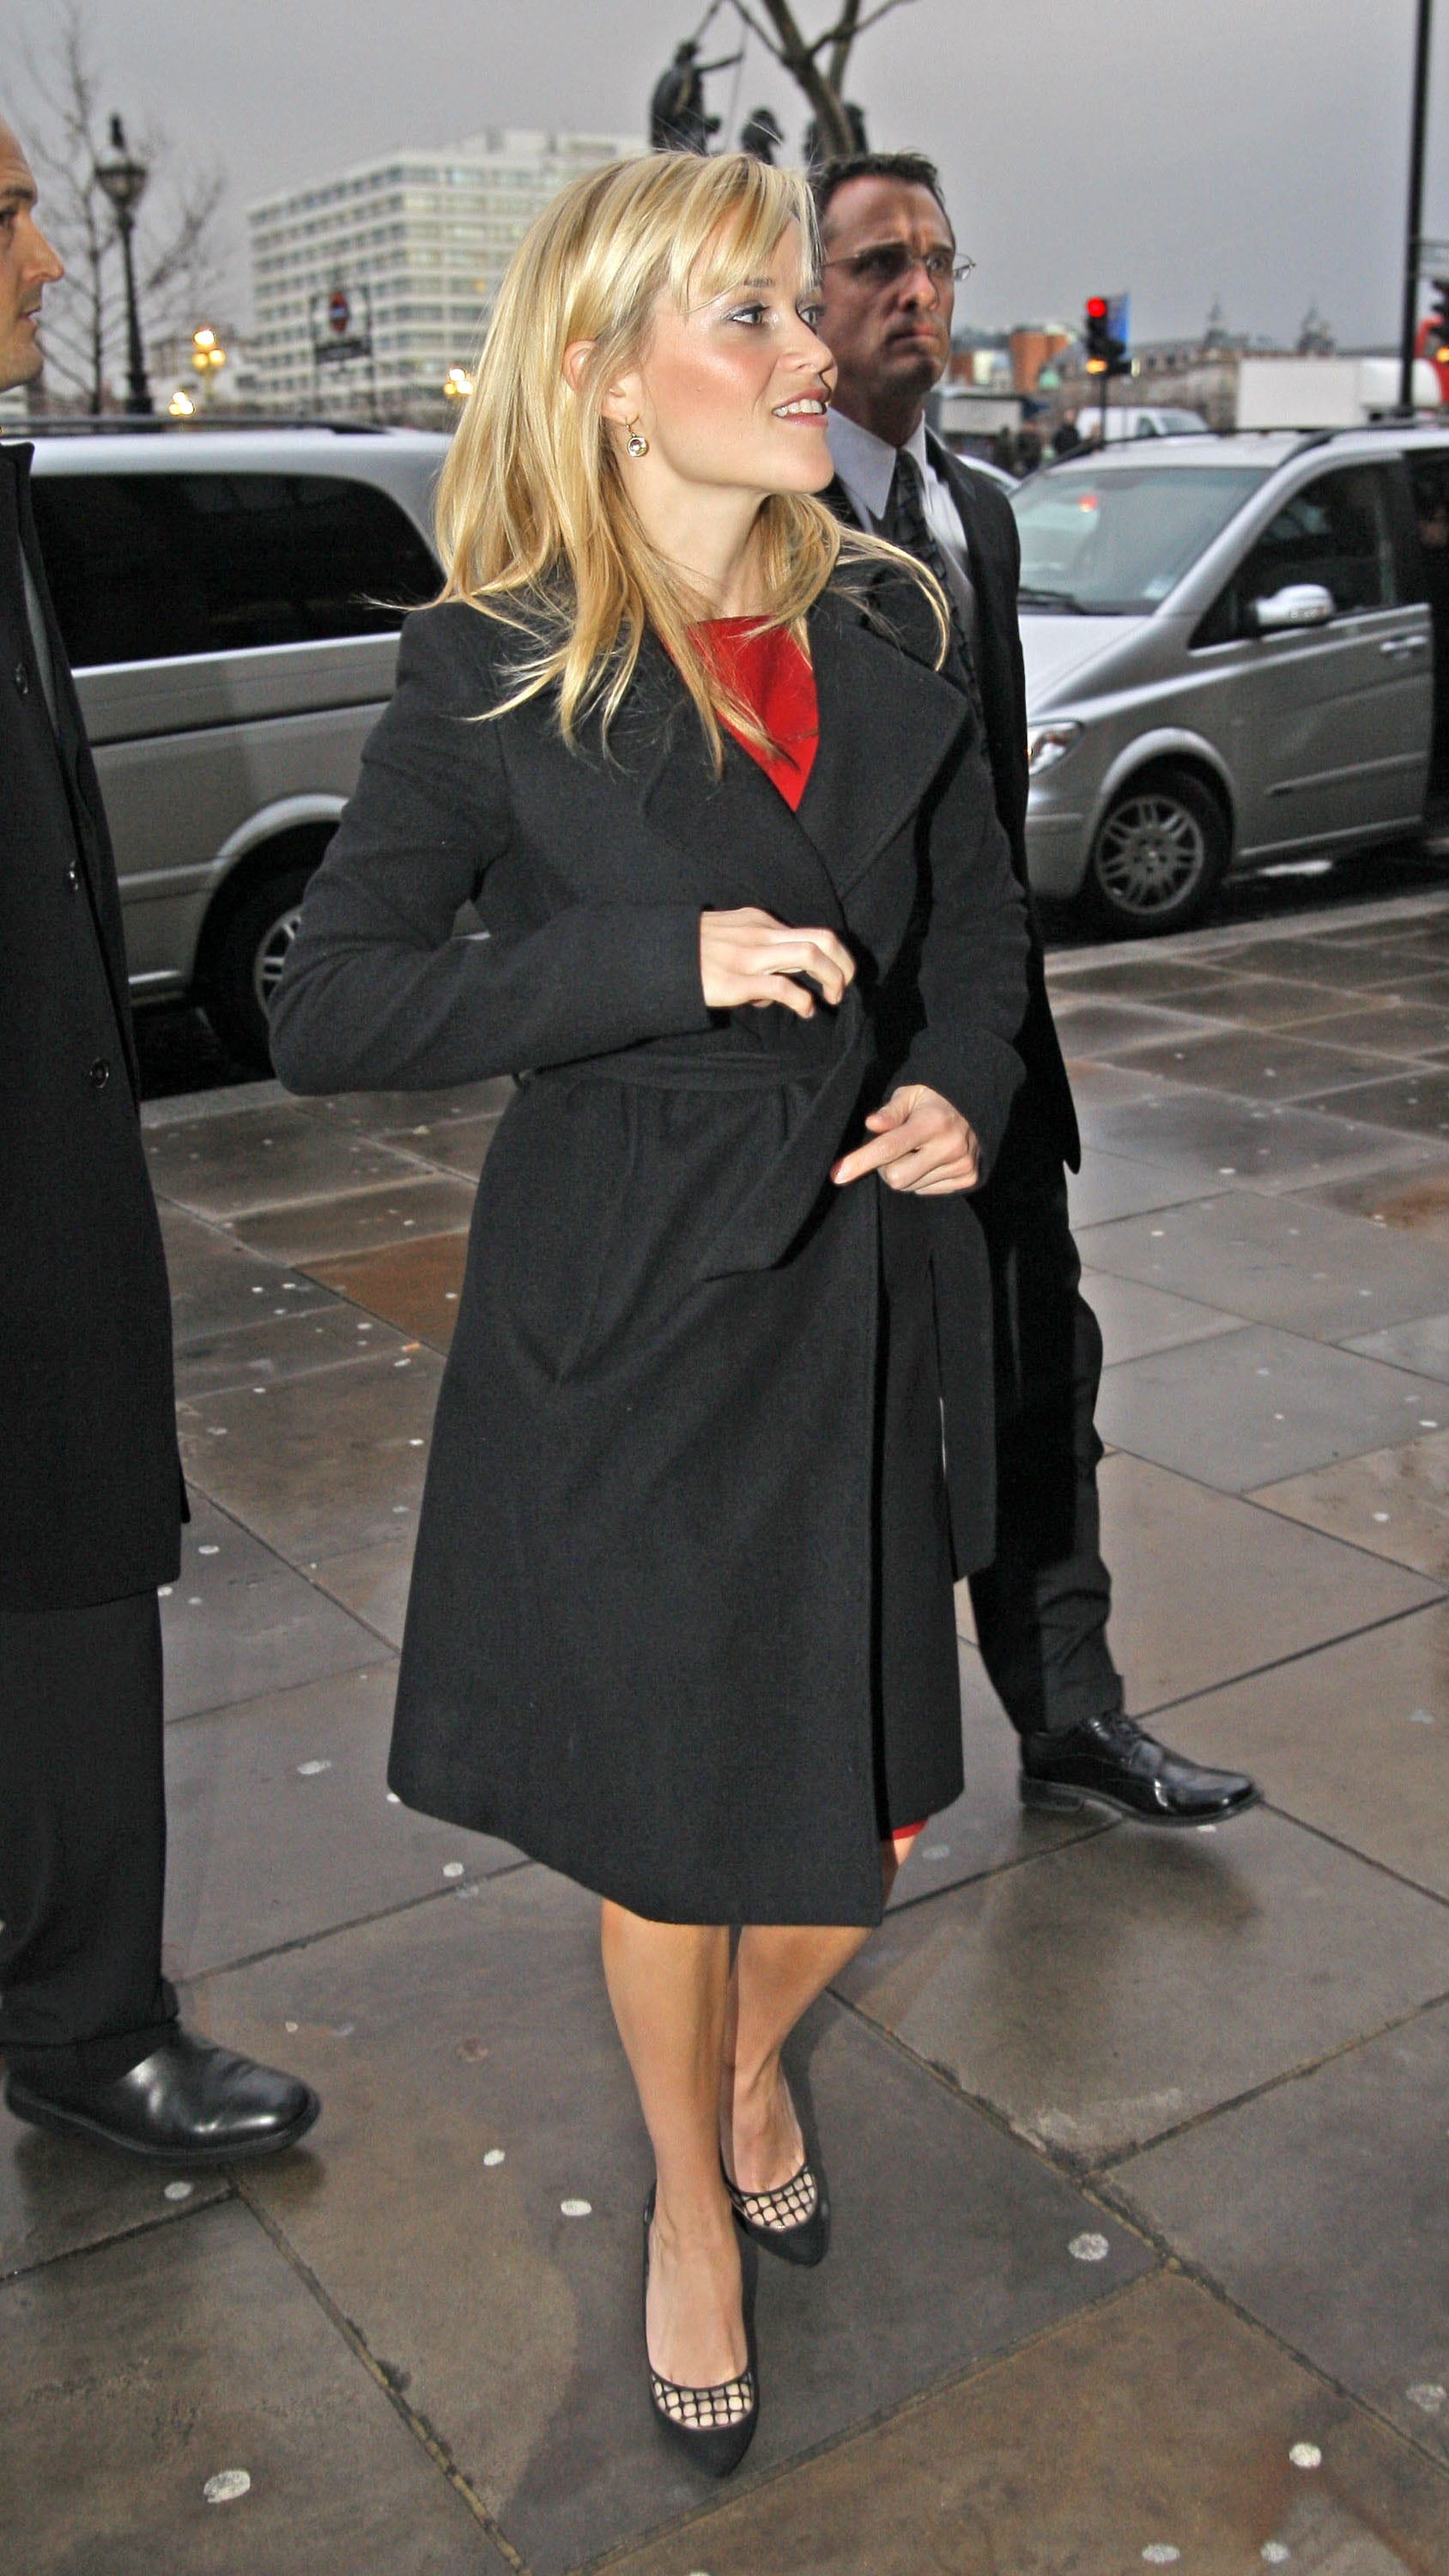 Photos of Reese Witherspoon in London